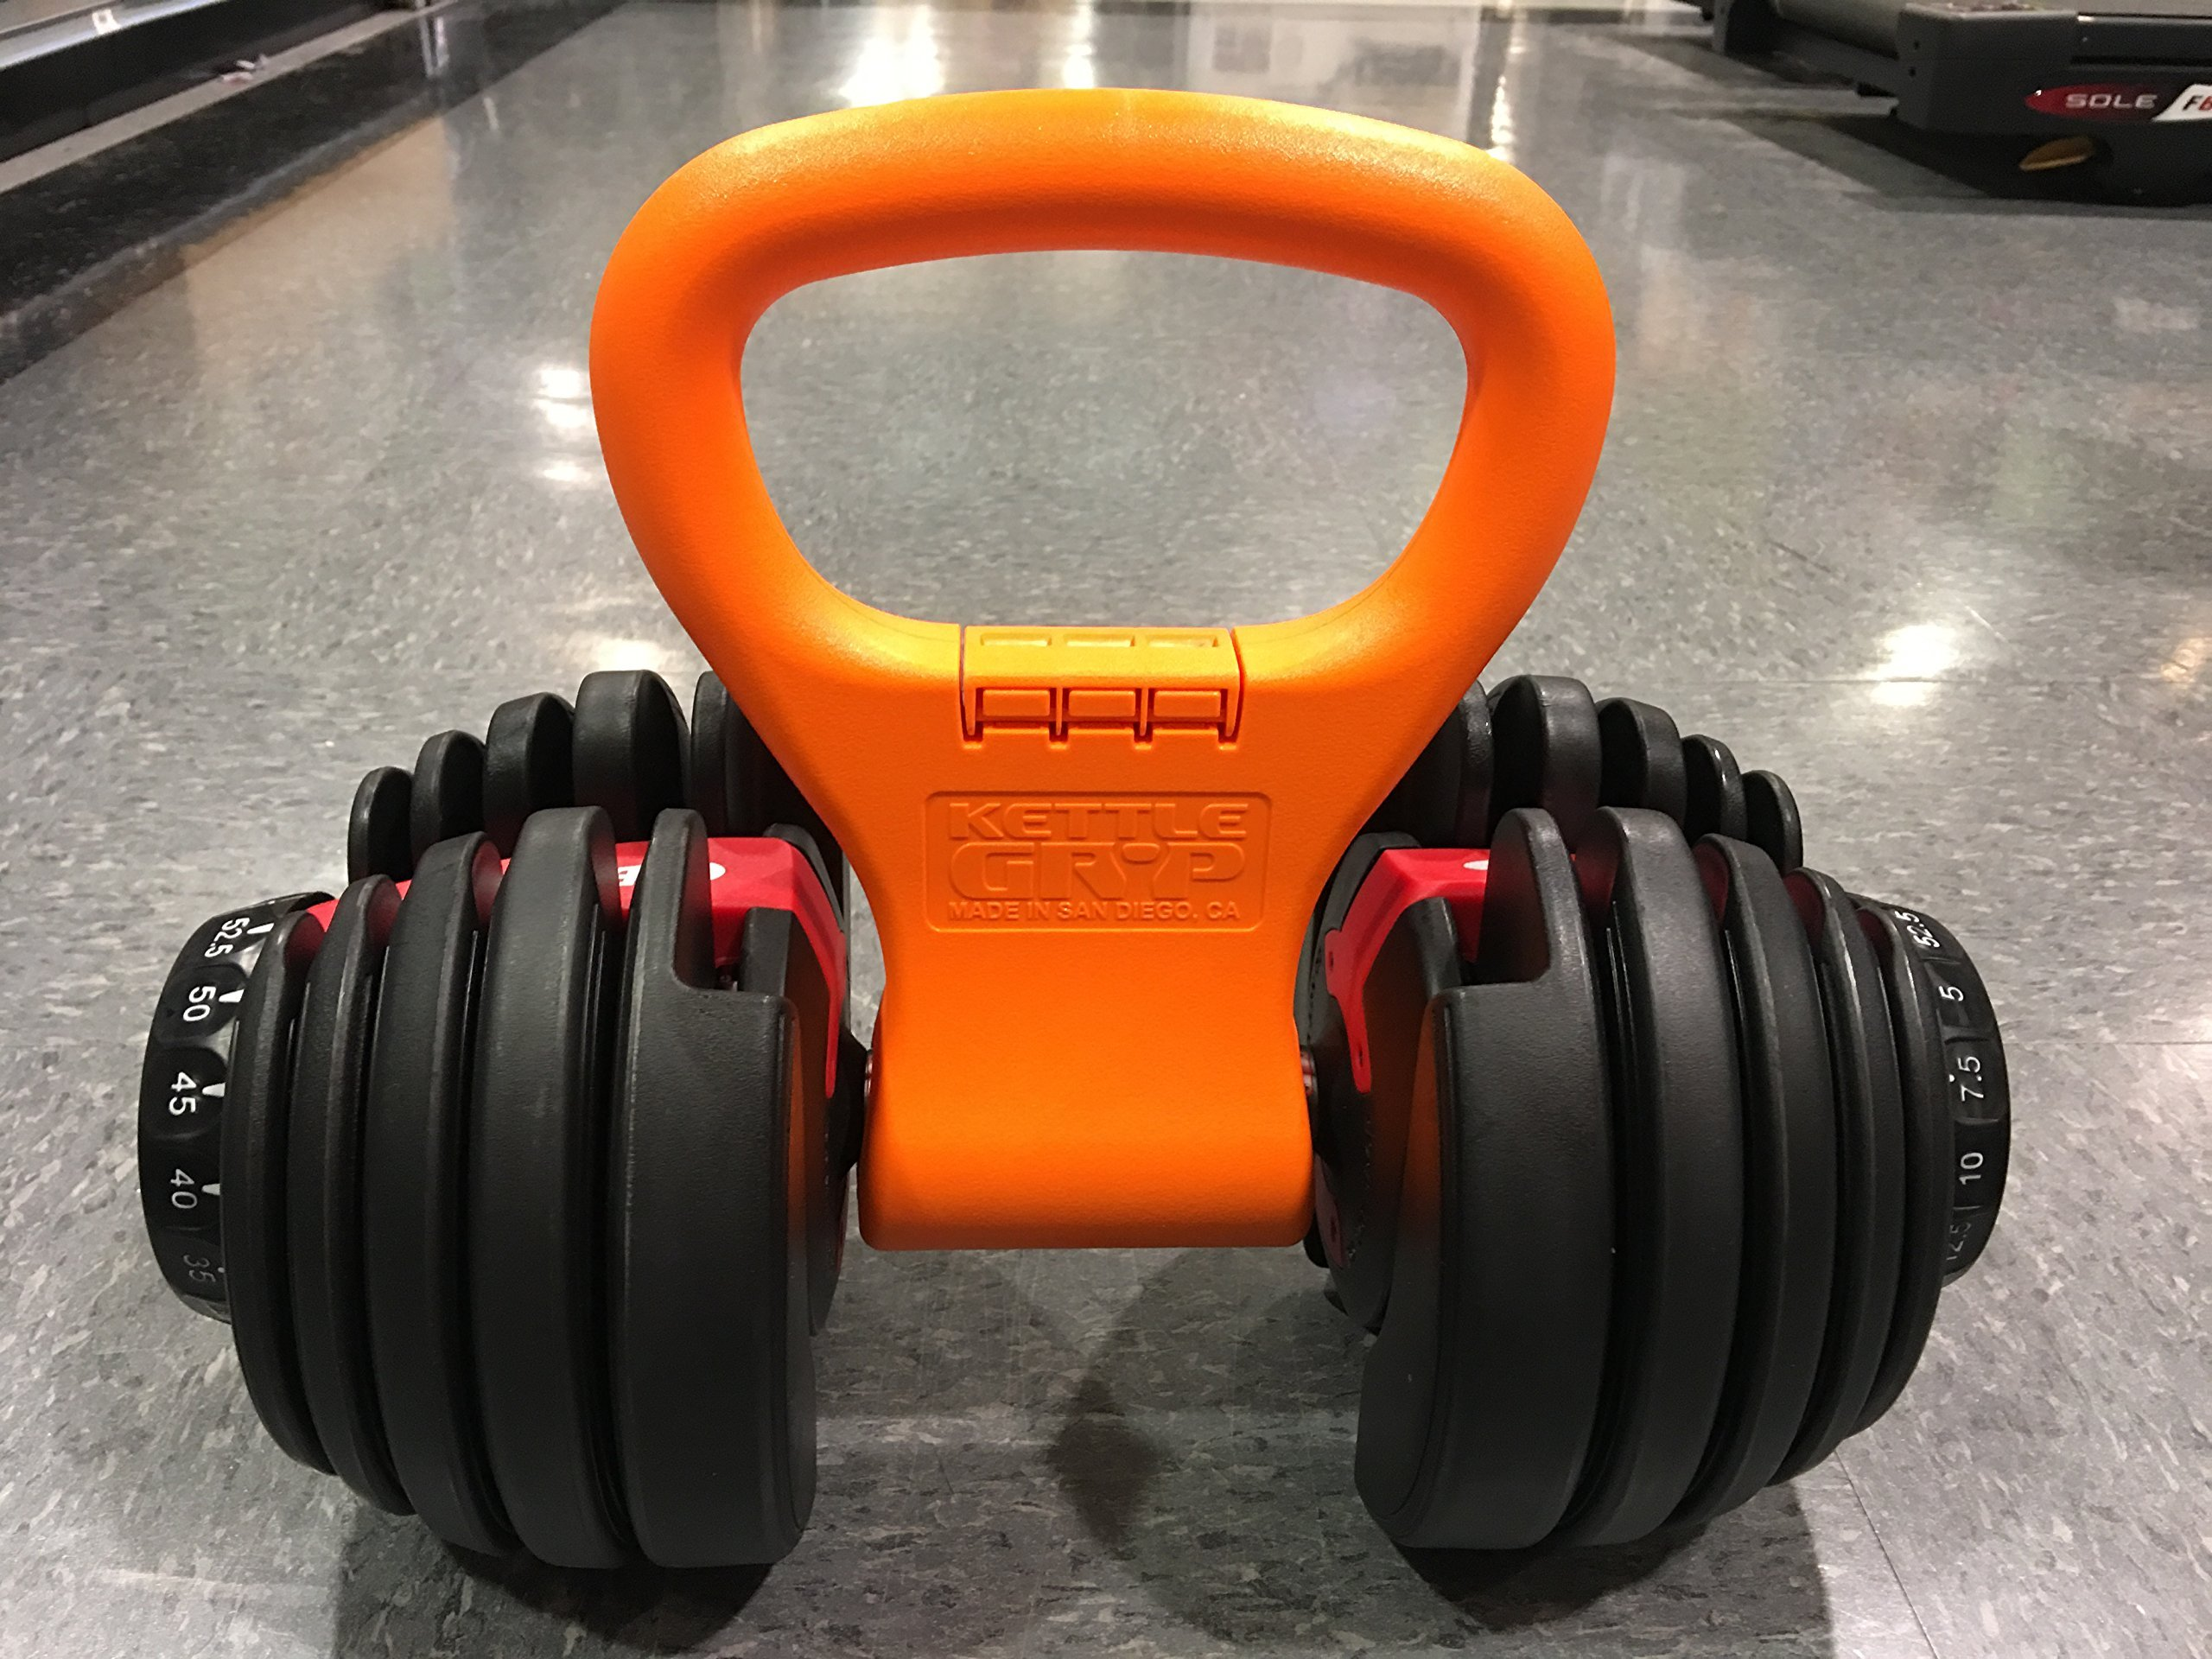 Kettle Gryp Kettlebell Adjustable Portable Weight Grip Travel Workout Equipment Gear for Gym Bag, Crossfit WOD, Weightlifting, Bodybuilding, Lose Weight | Clamps to Dumbells | Made in U.S.A. by Kettle Gryp (Image #4)